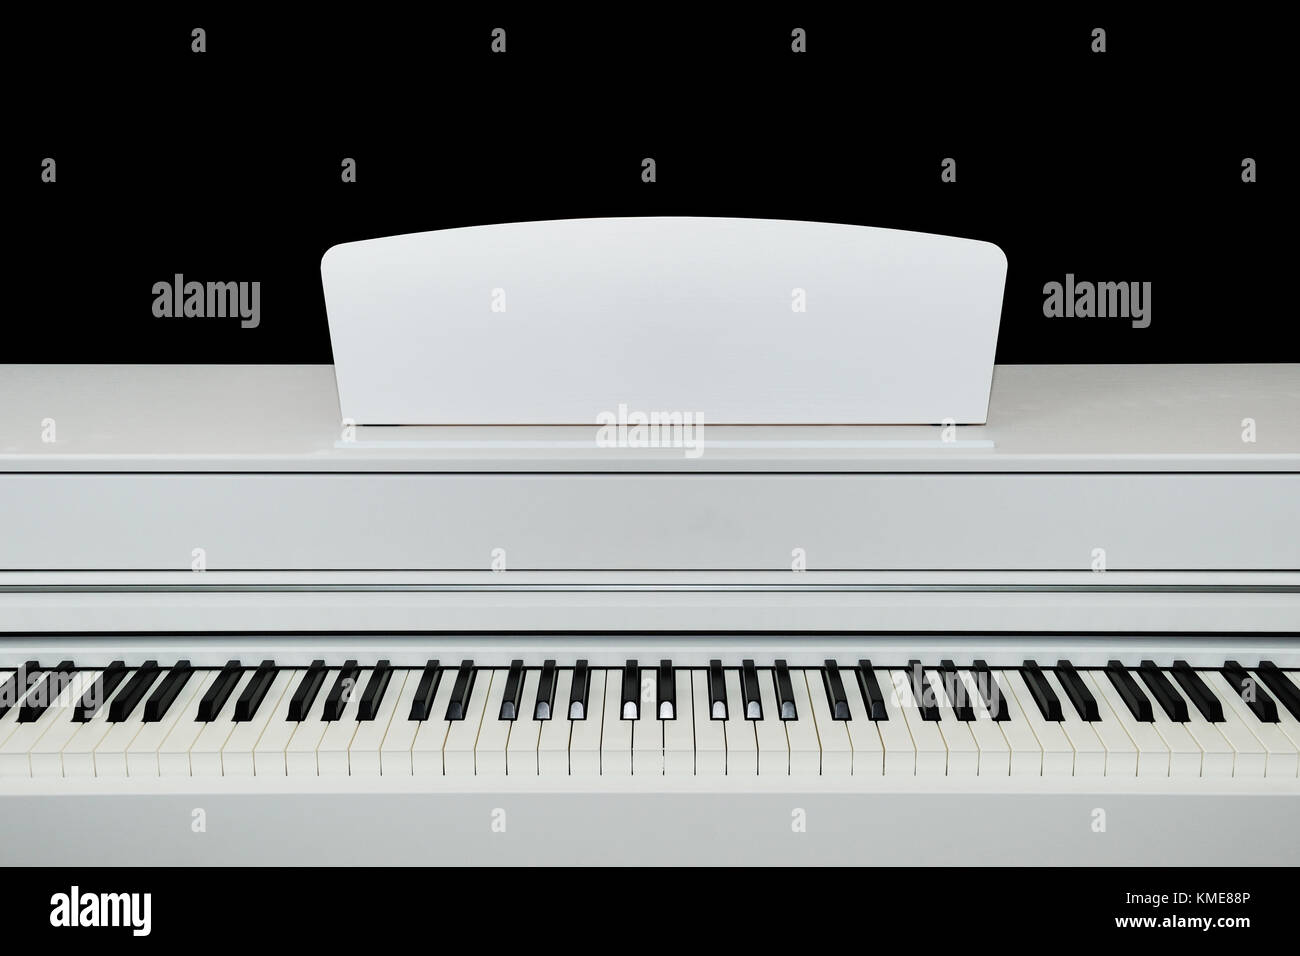 Digital white electric piano keys close up . - Stock Image